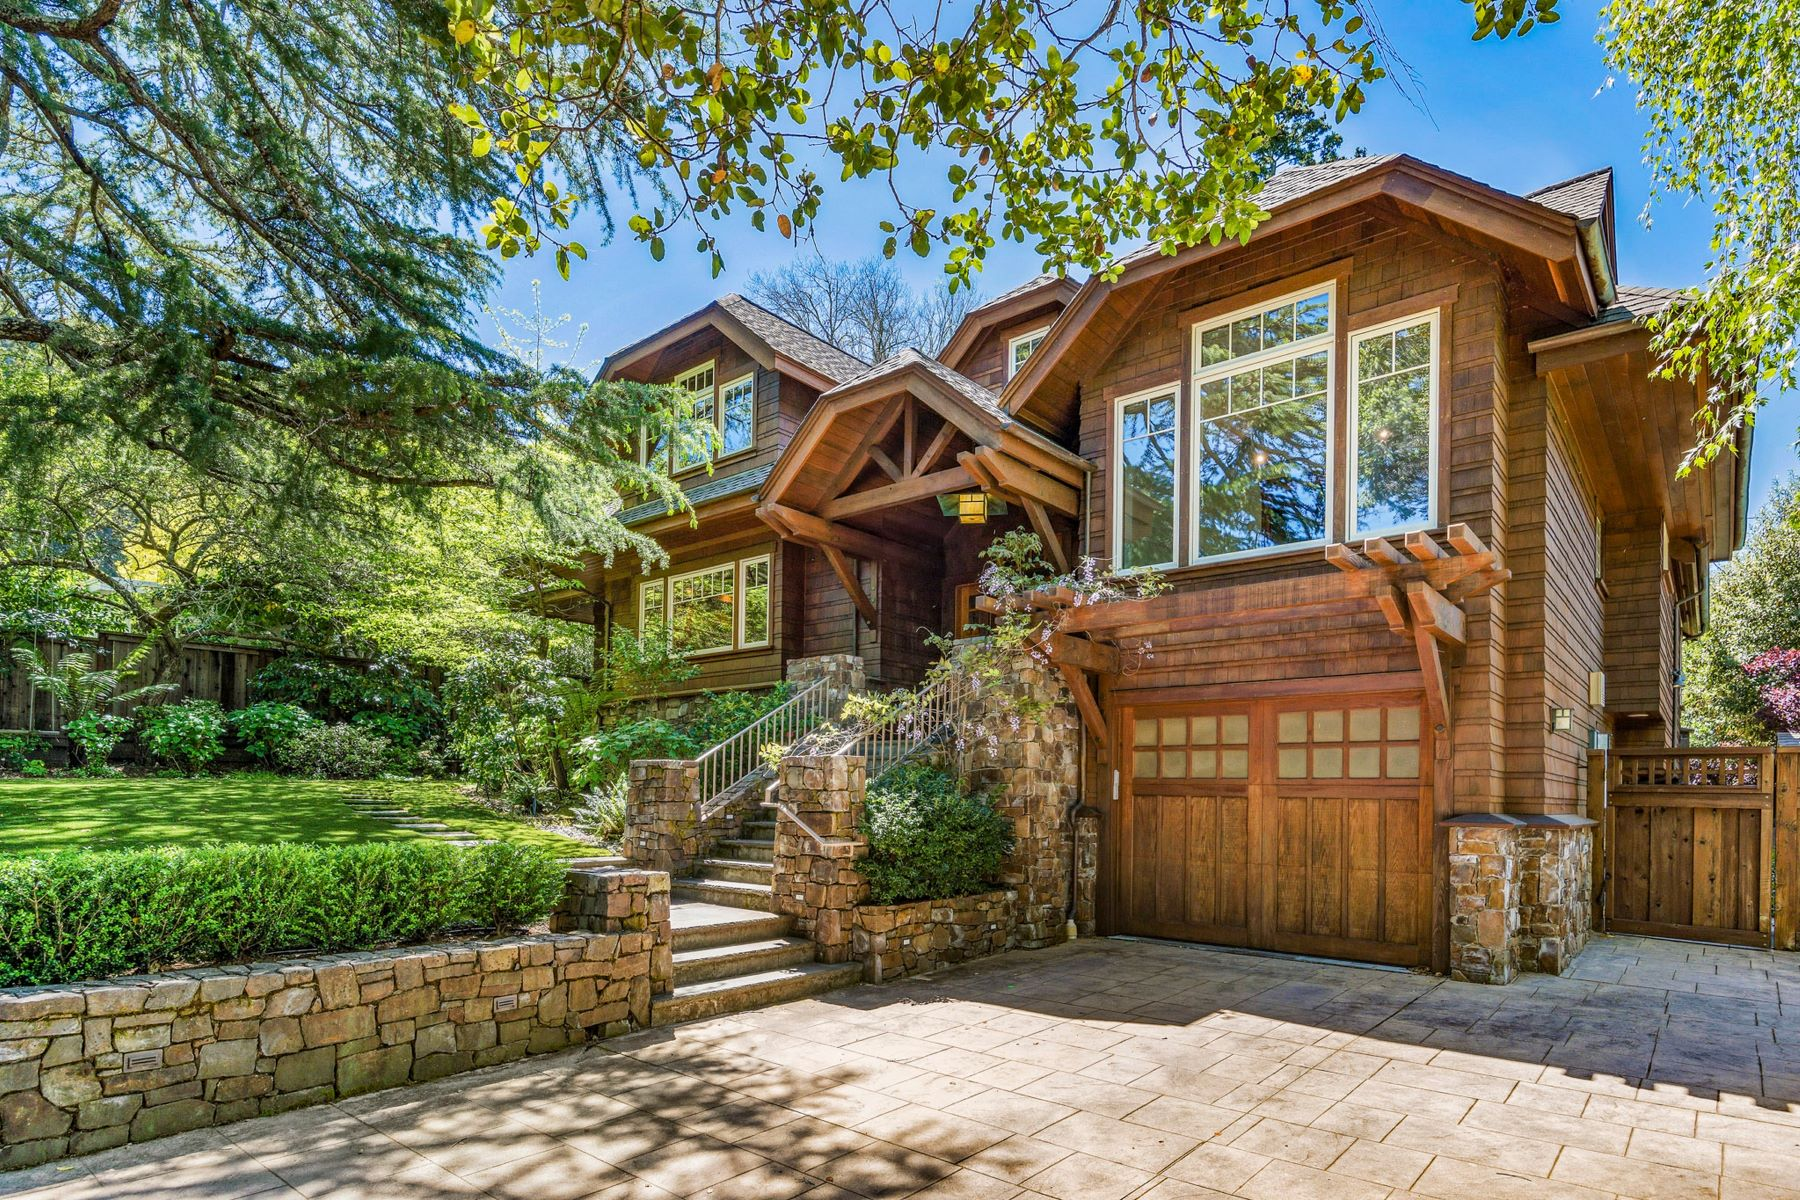 Single Family Homes for Sale at Beautiful Craftsman Style 4 BR / 3 BA on Gated Level Lot in Prime Ross Location 2 Thomas Court Ross, California 94957 United States